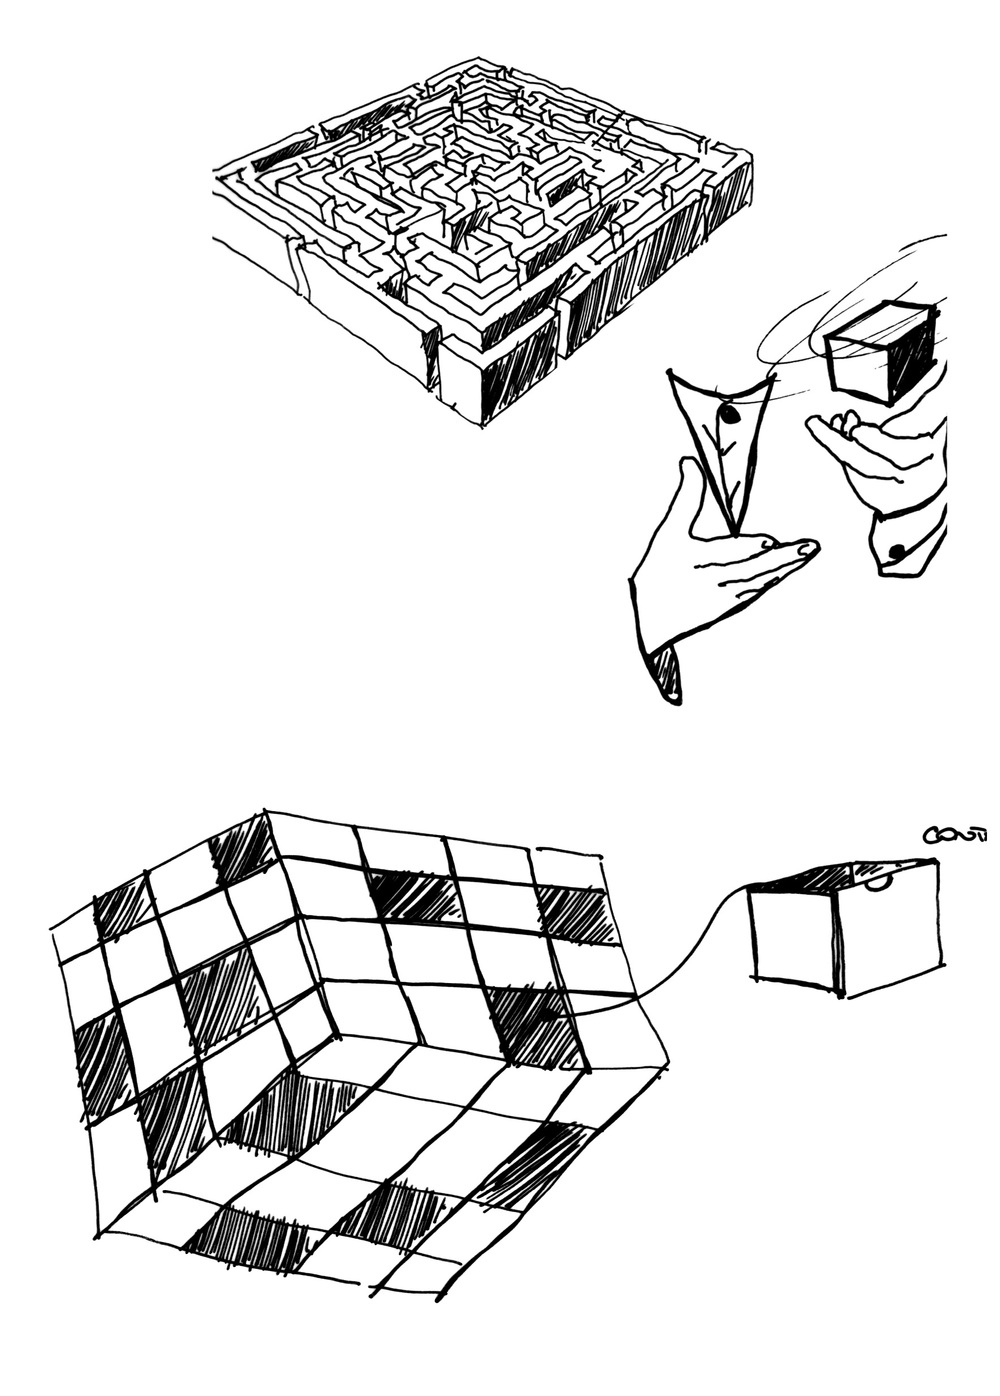 Solo Cube_Concept development sketch